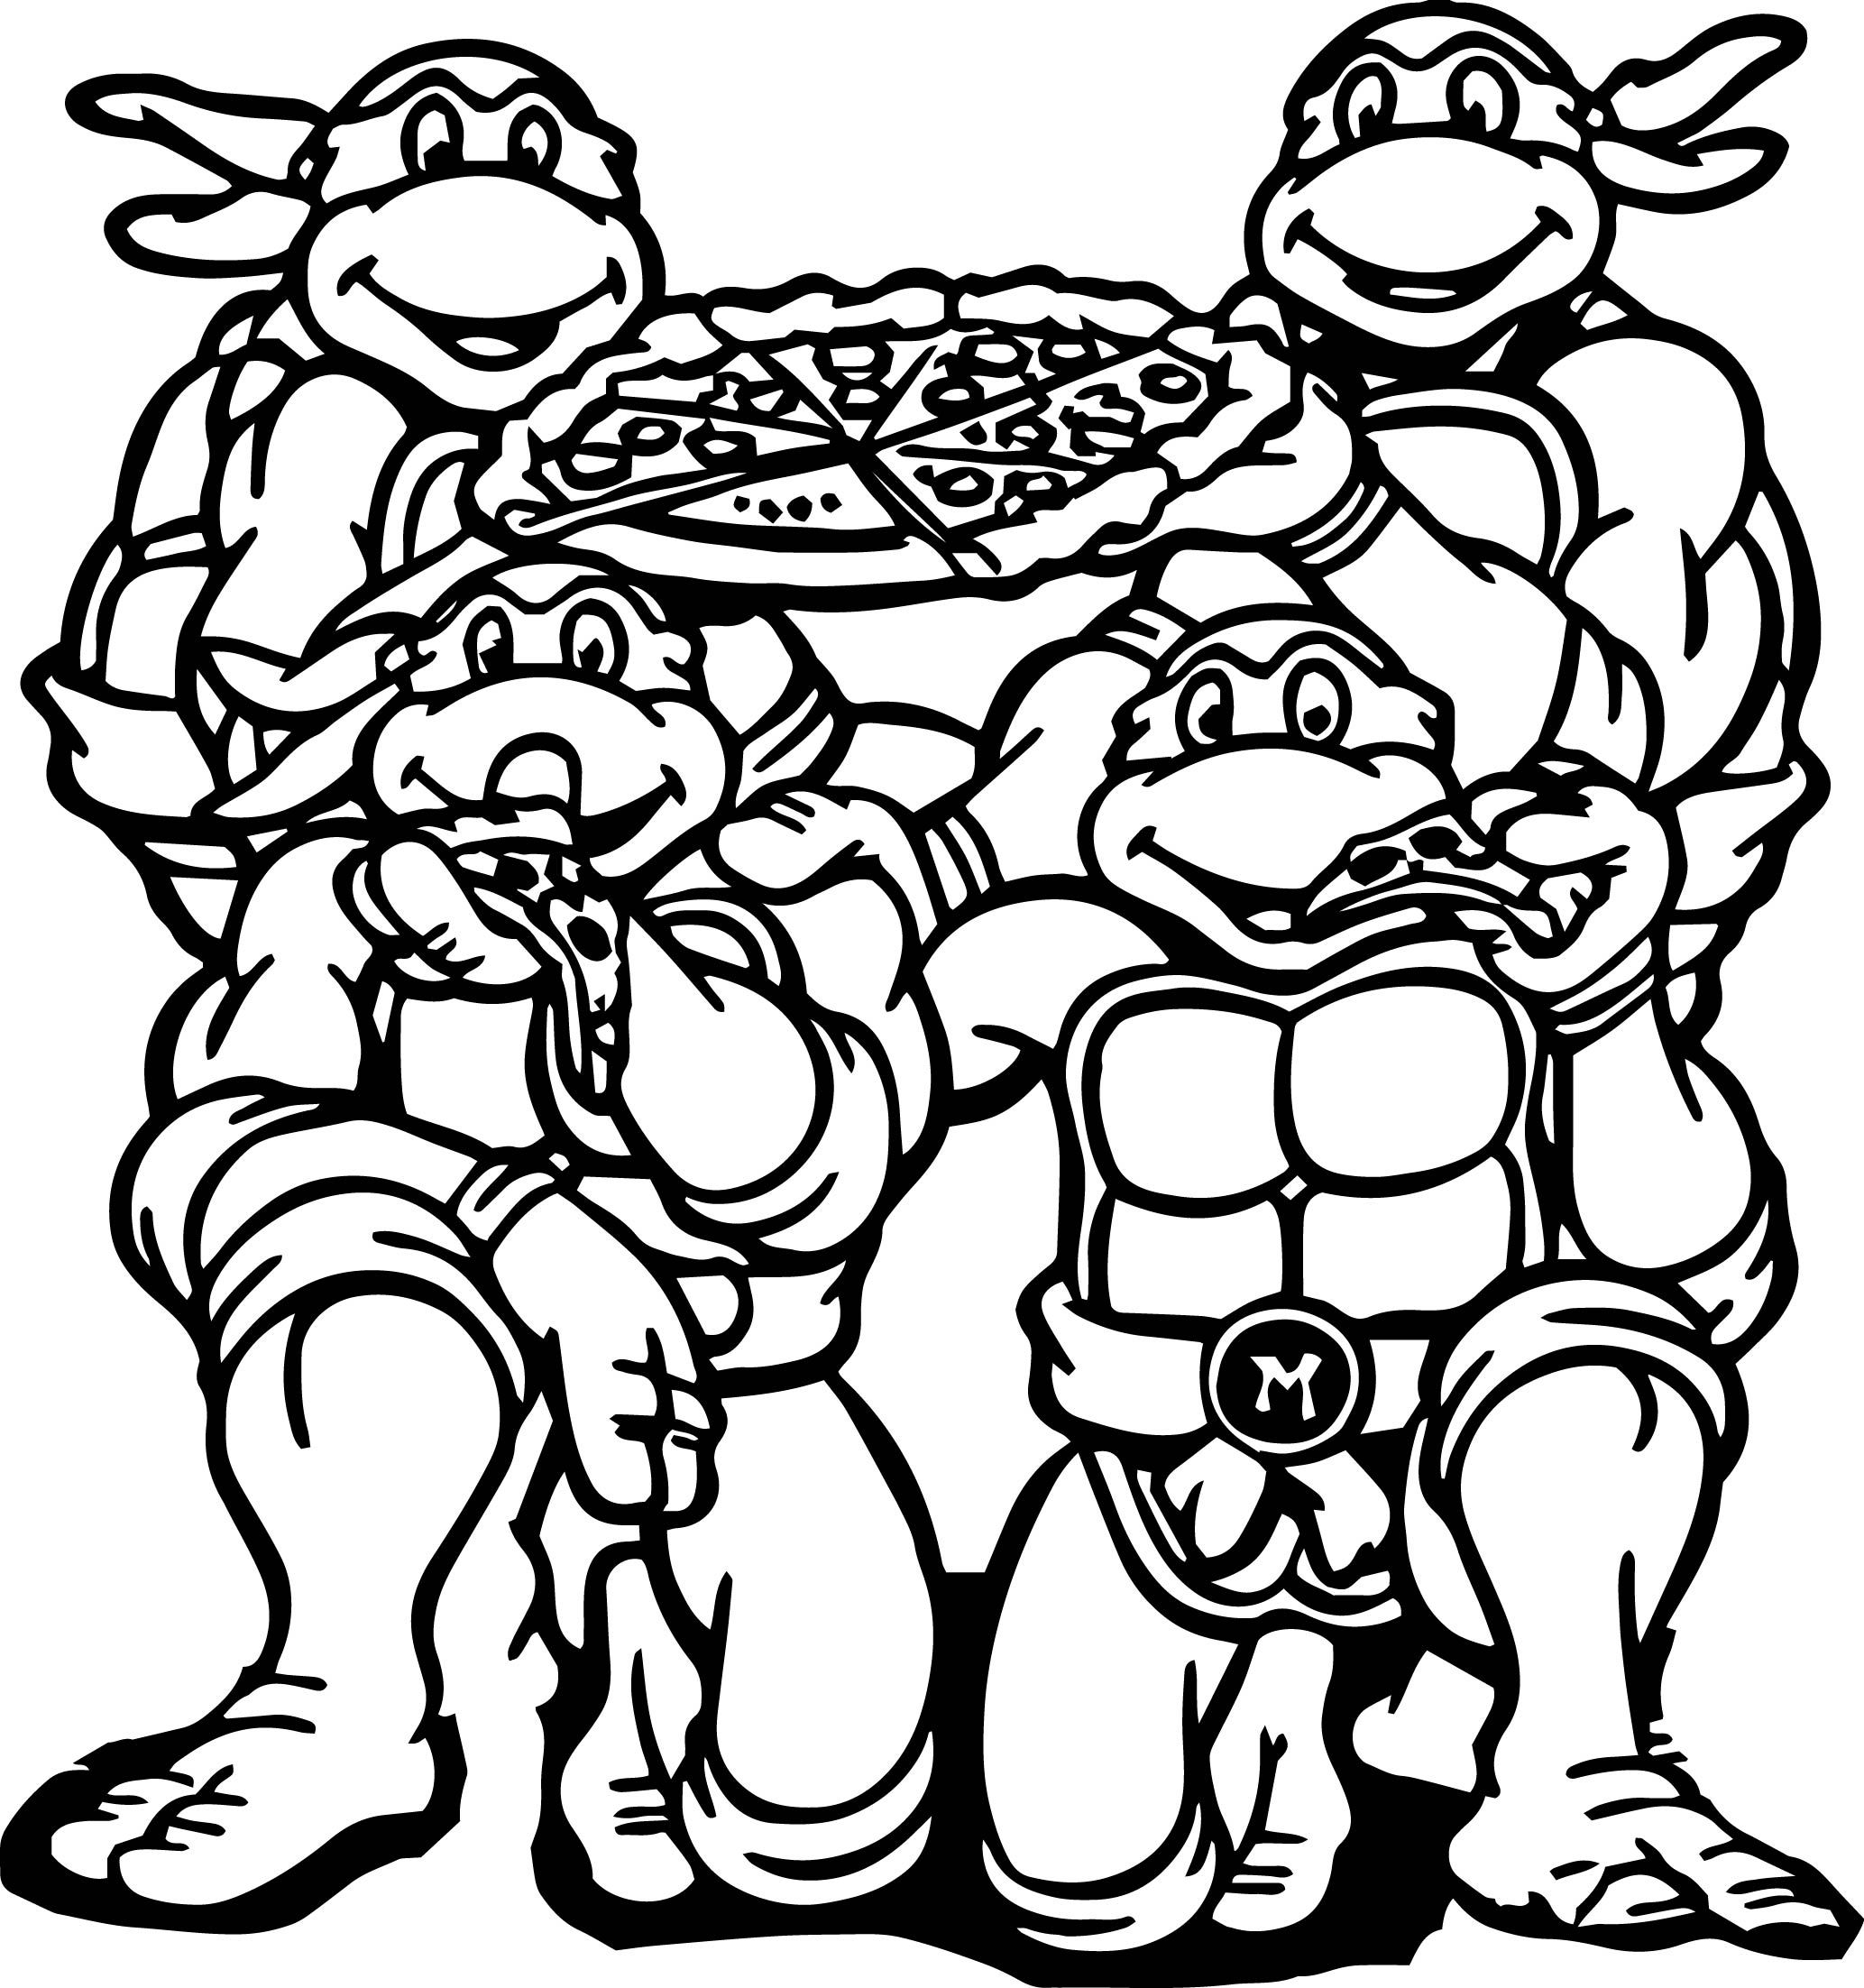 ninja turtles michelangelo ninja turtle eat pizza coloring page